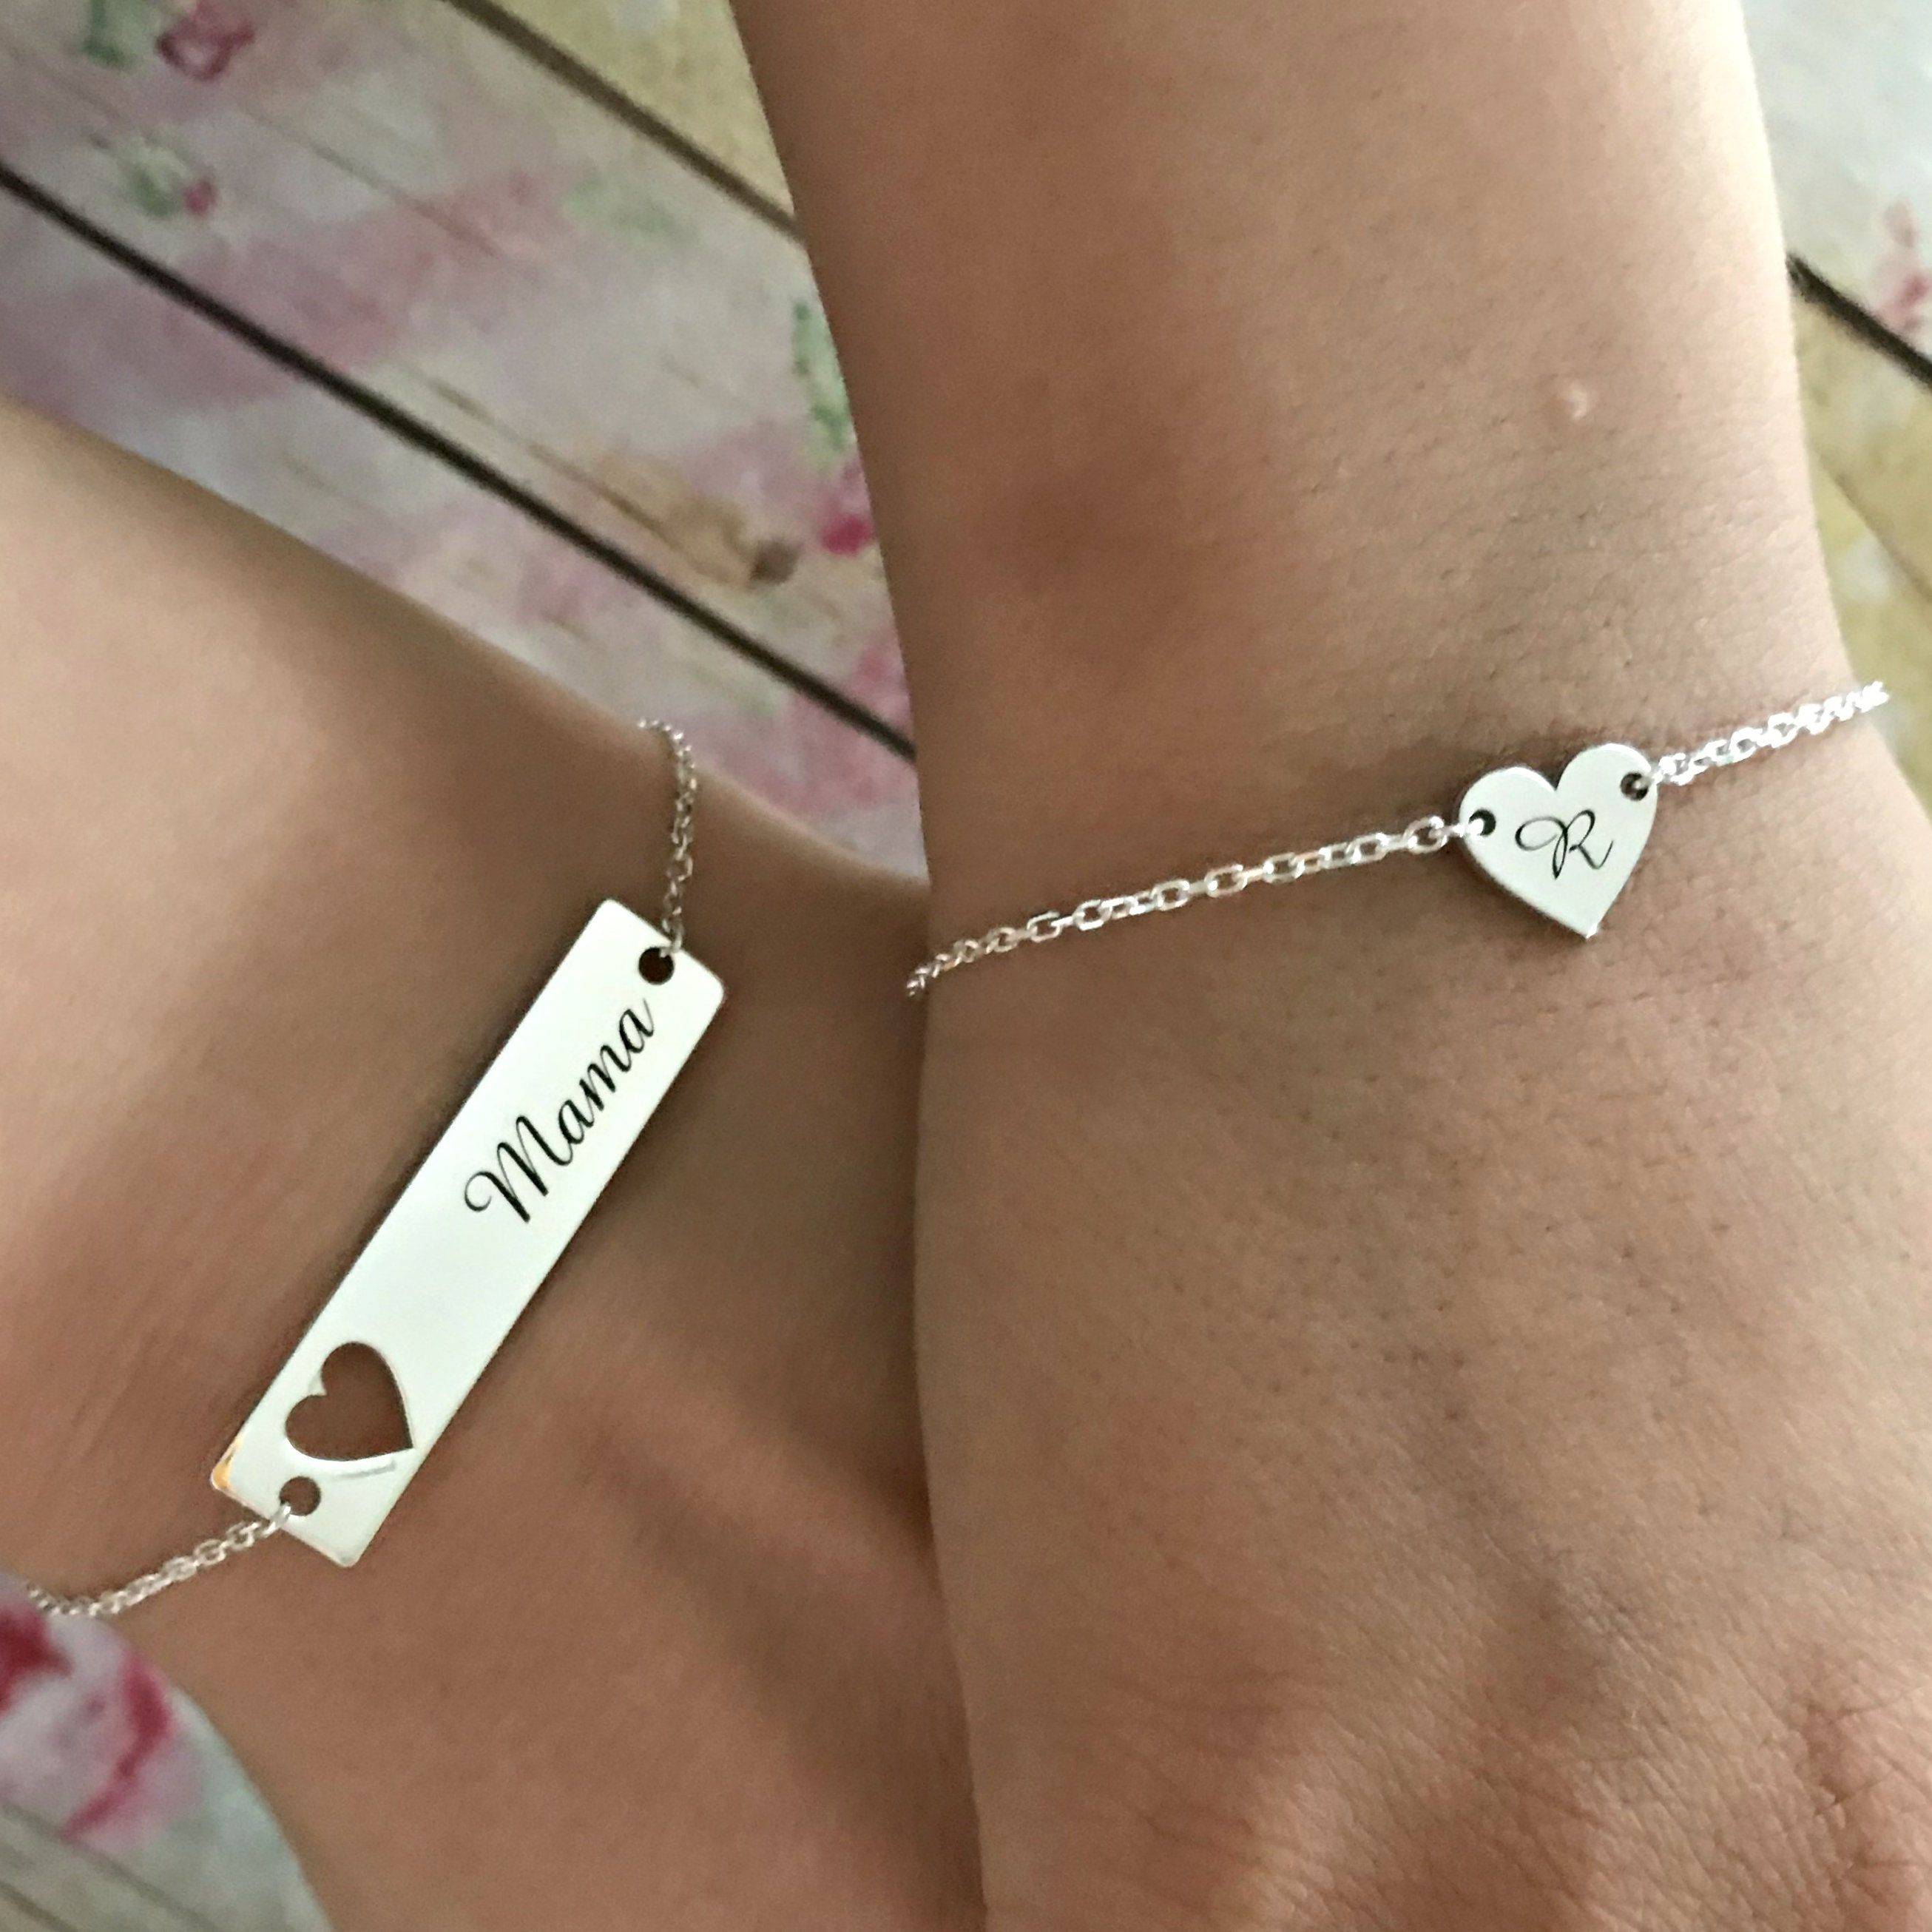 Engraved Silver Tag on Charm Bracelet Gifts for Flower Girls or Bridesmaids